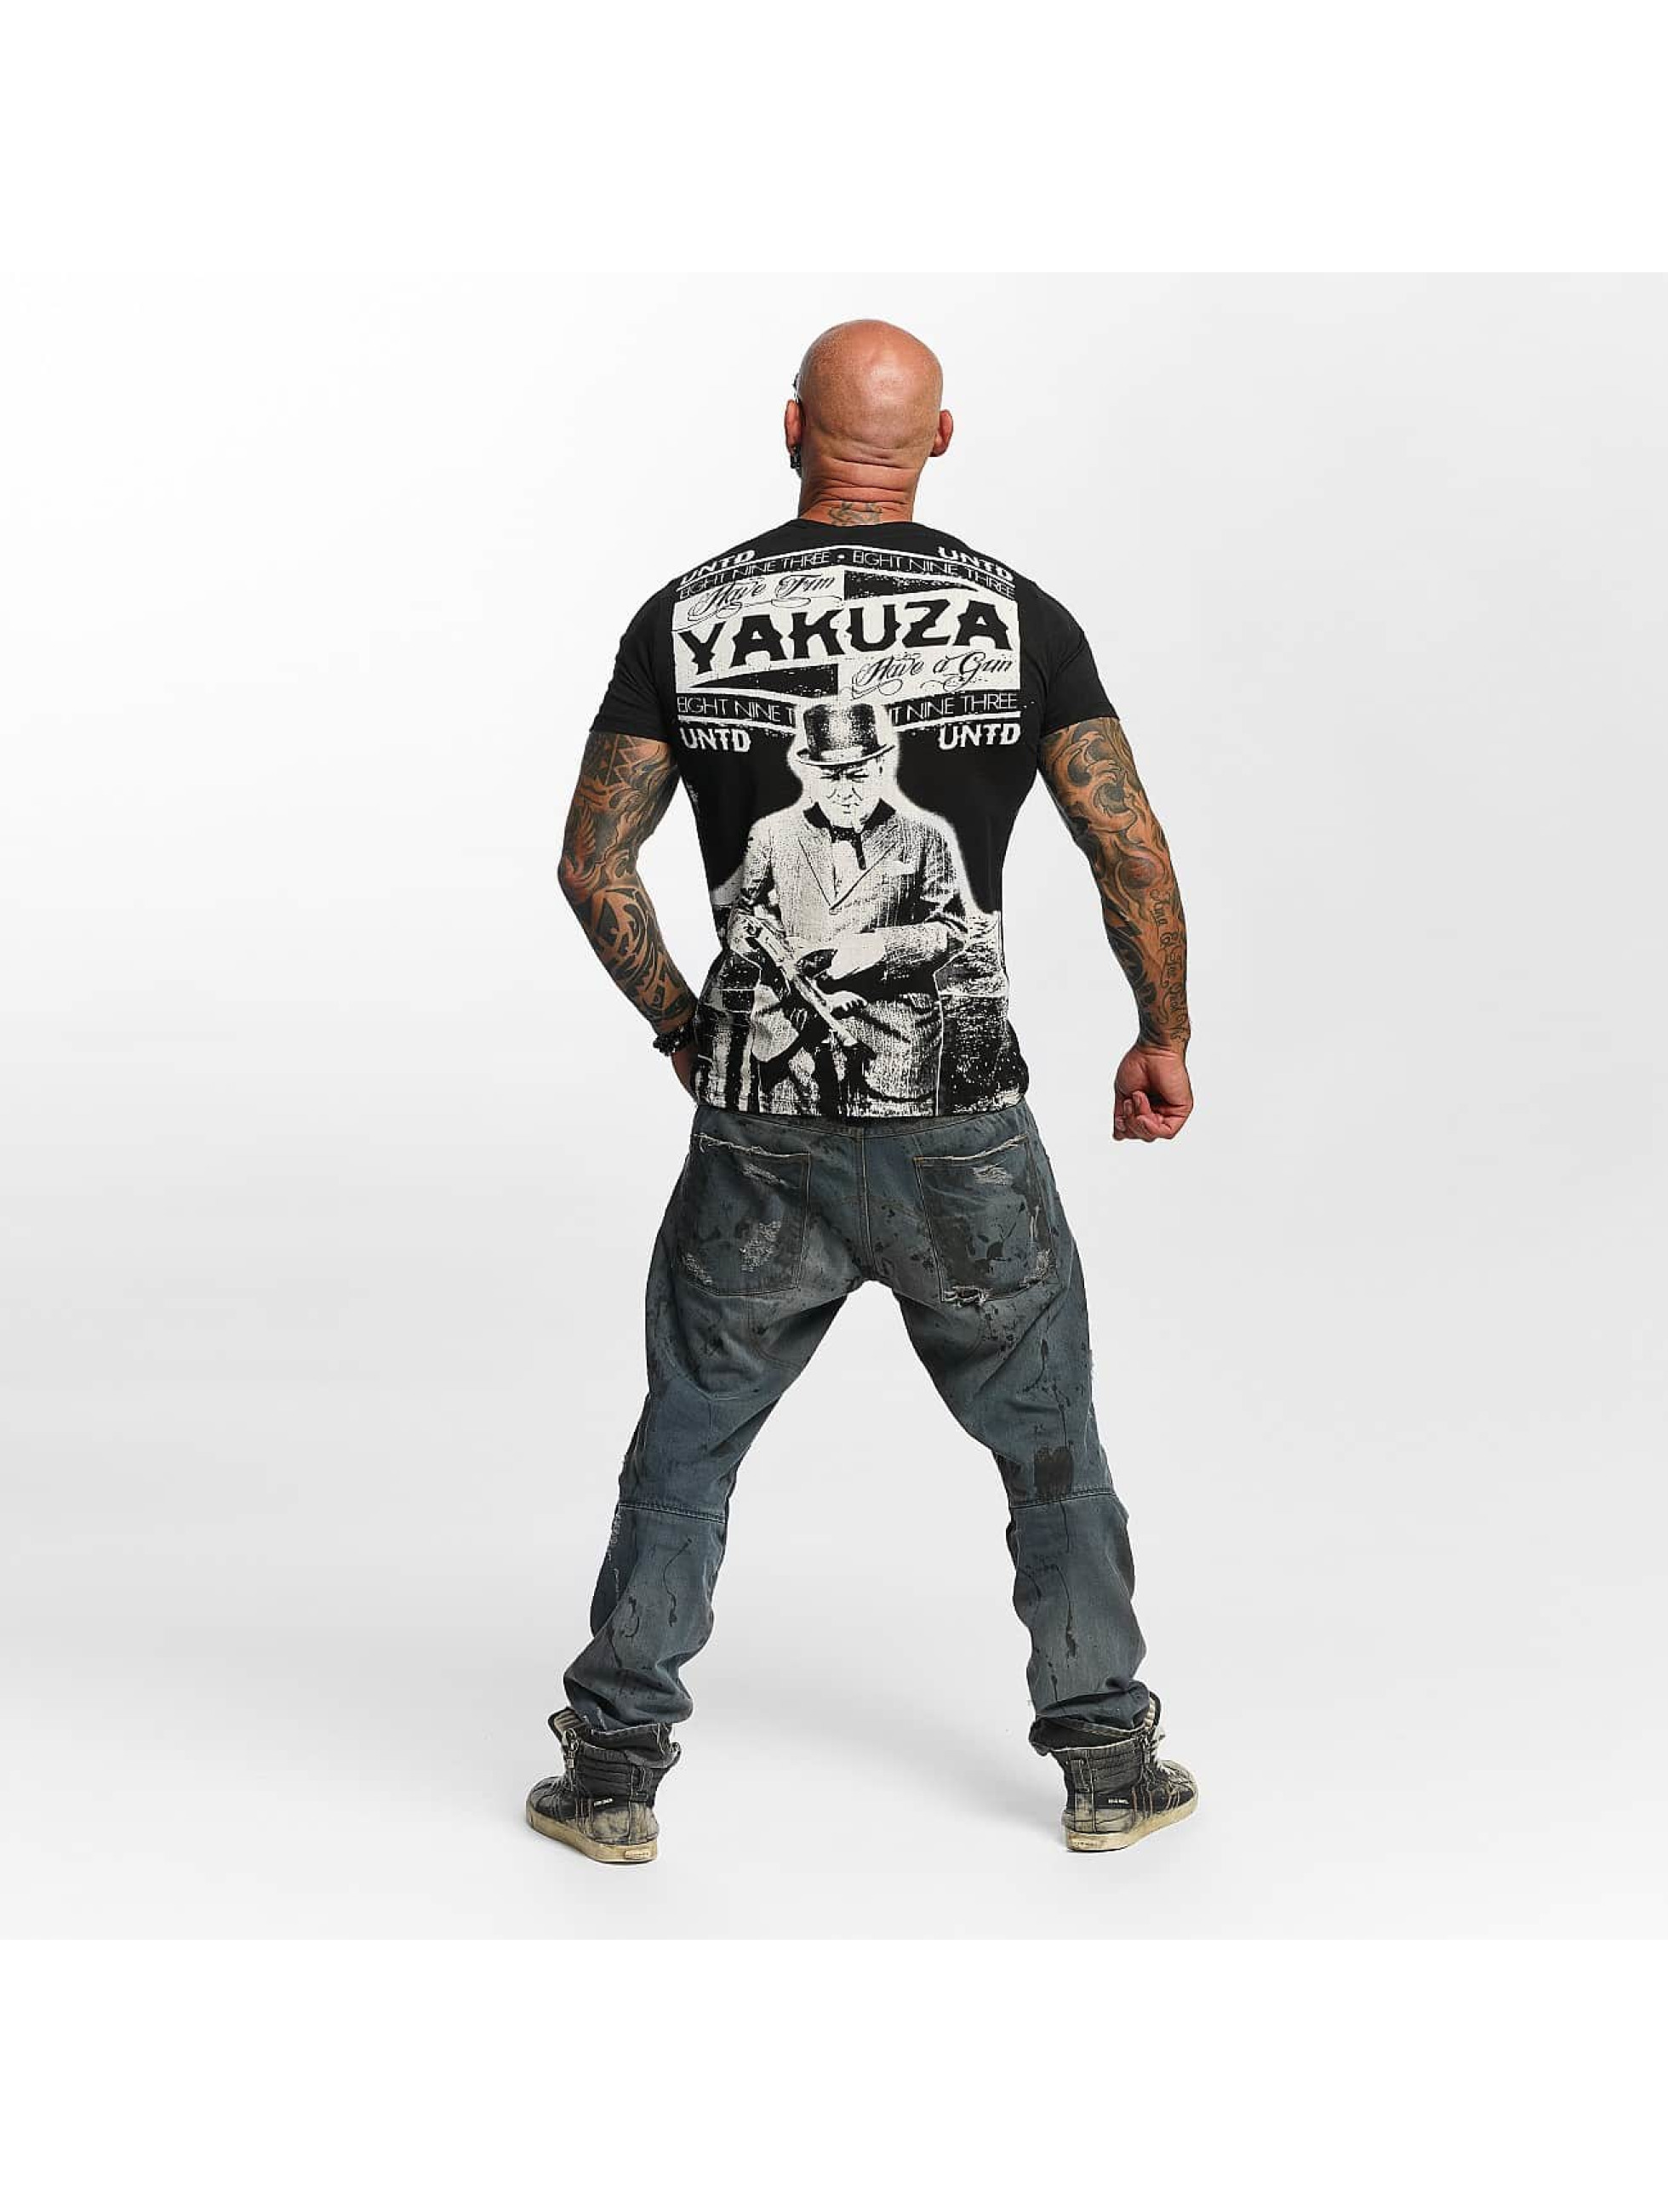 Yakuza T-Shirt Untd black